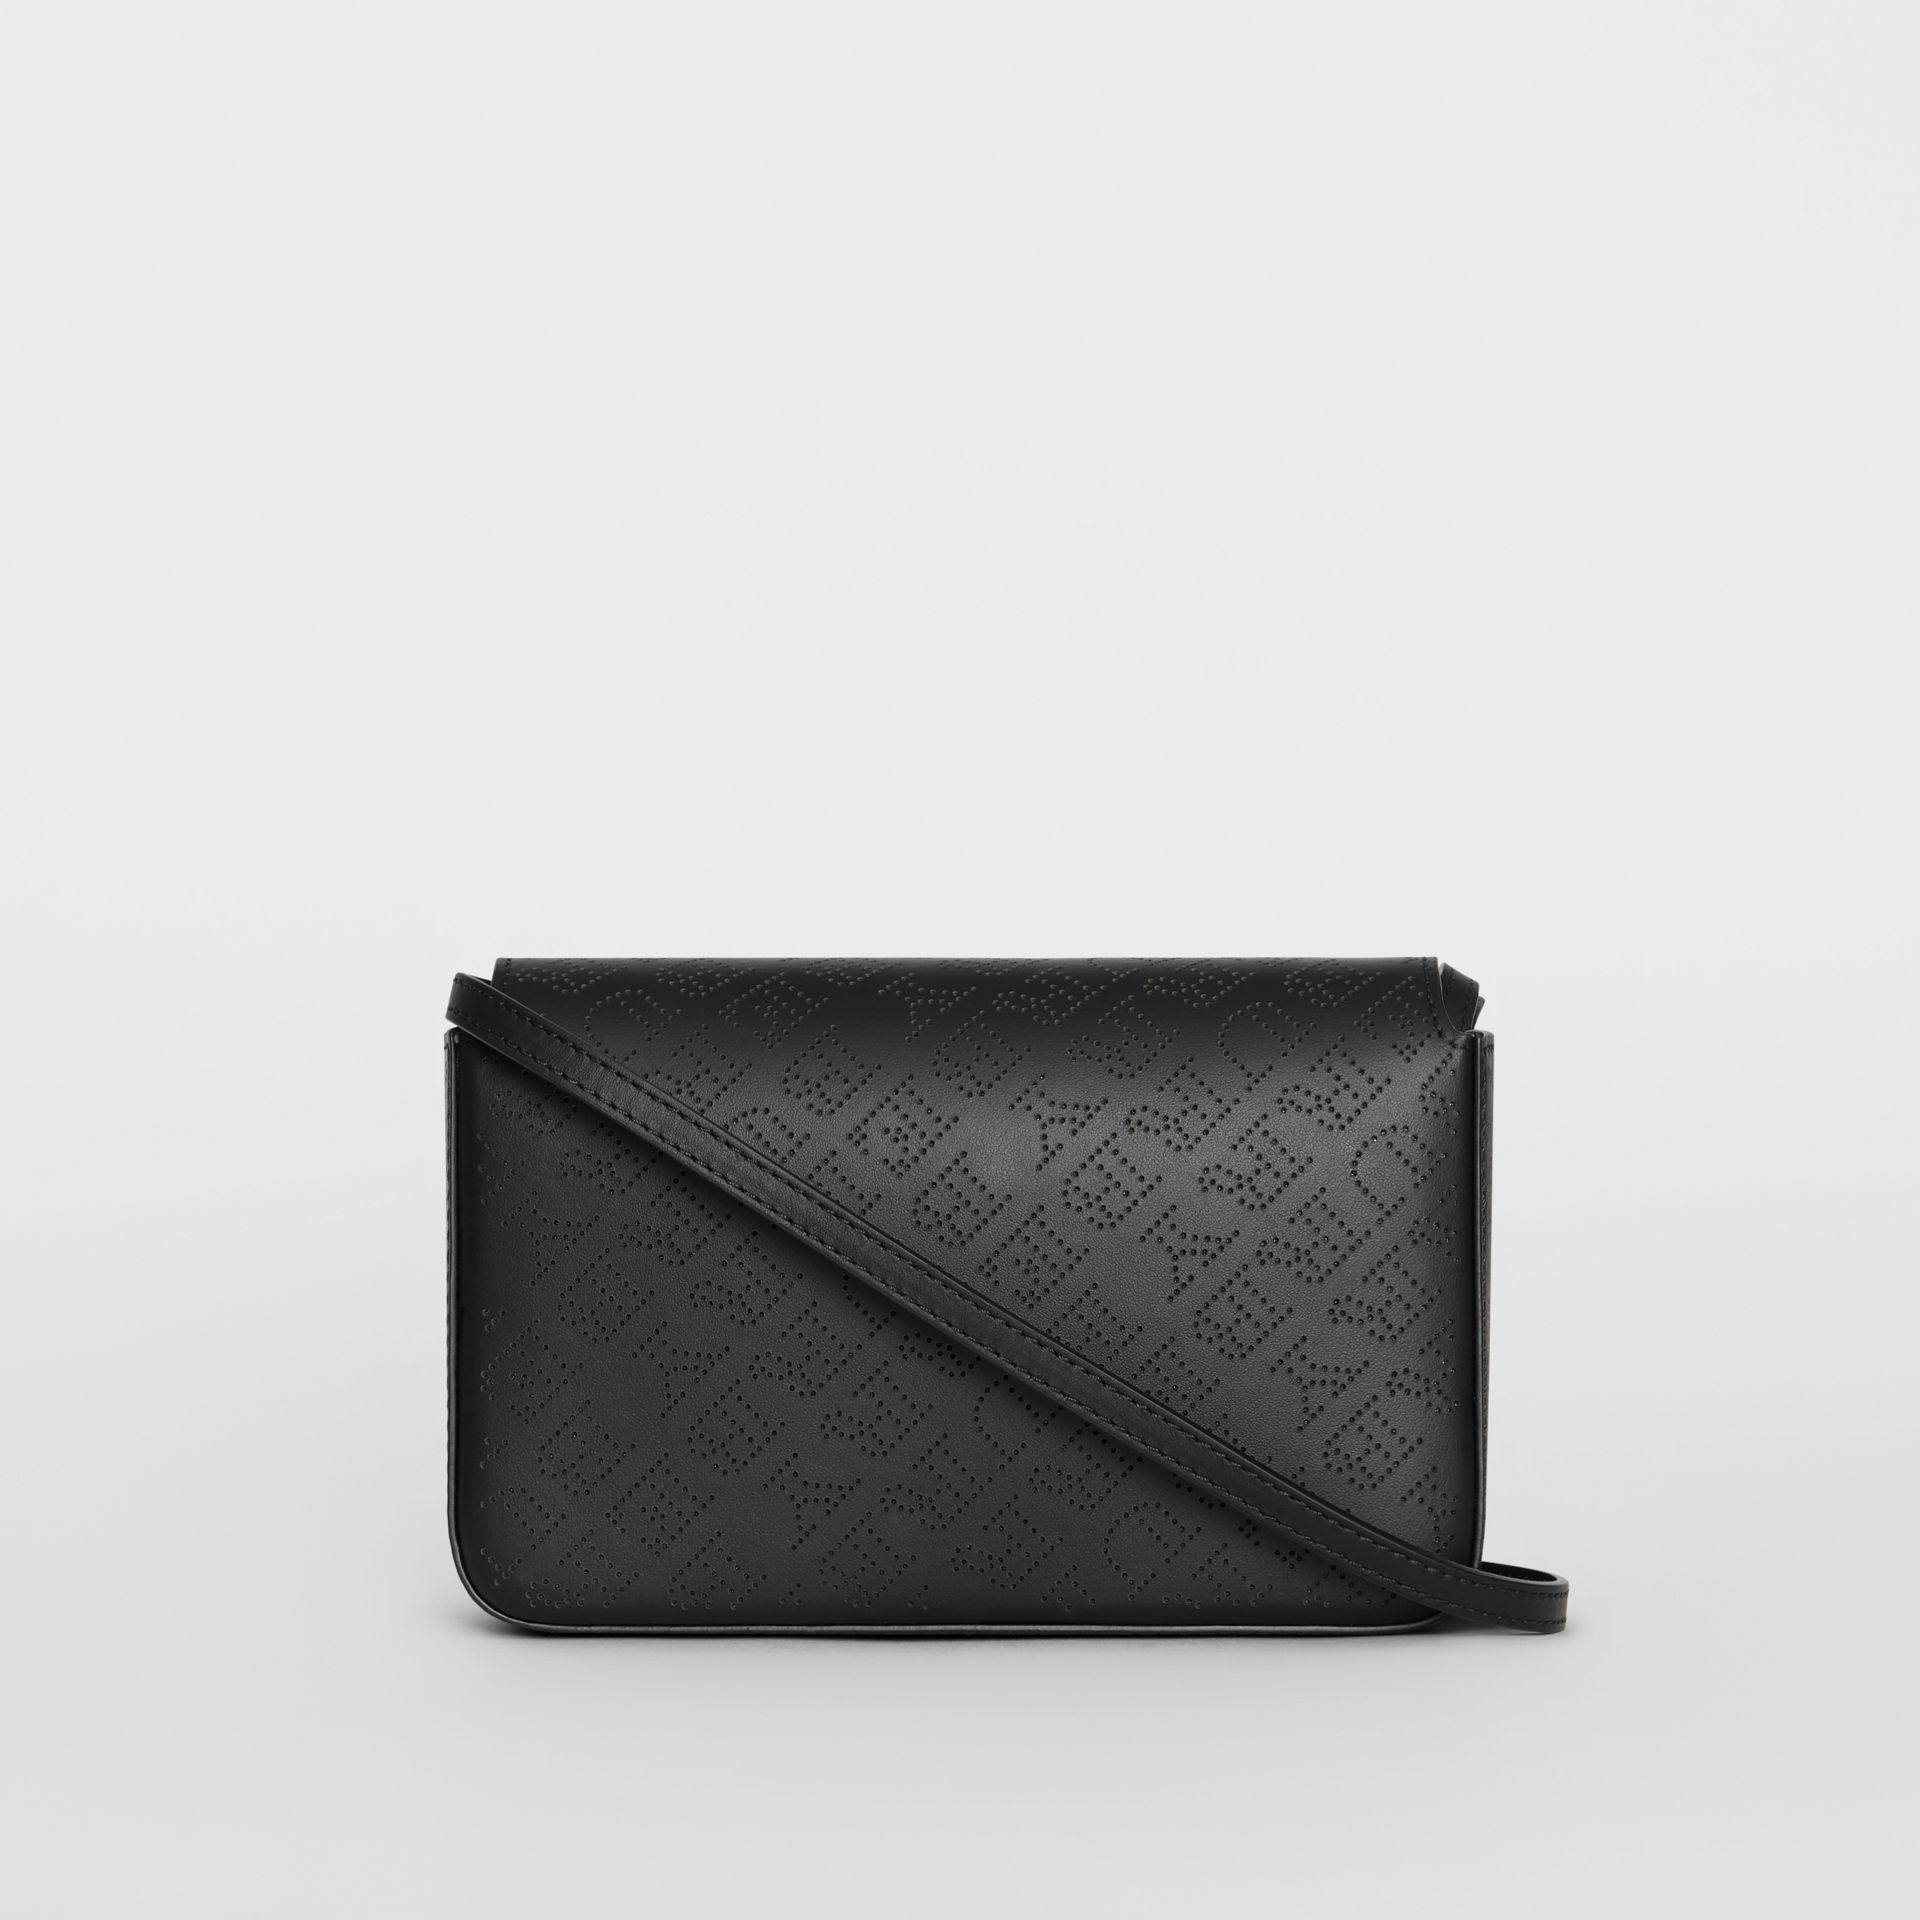 Perforated Logo Leather Wallet with Detachable Strap in Black - Women | Burberry - gallery image 5